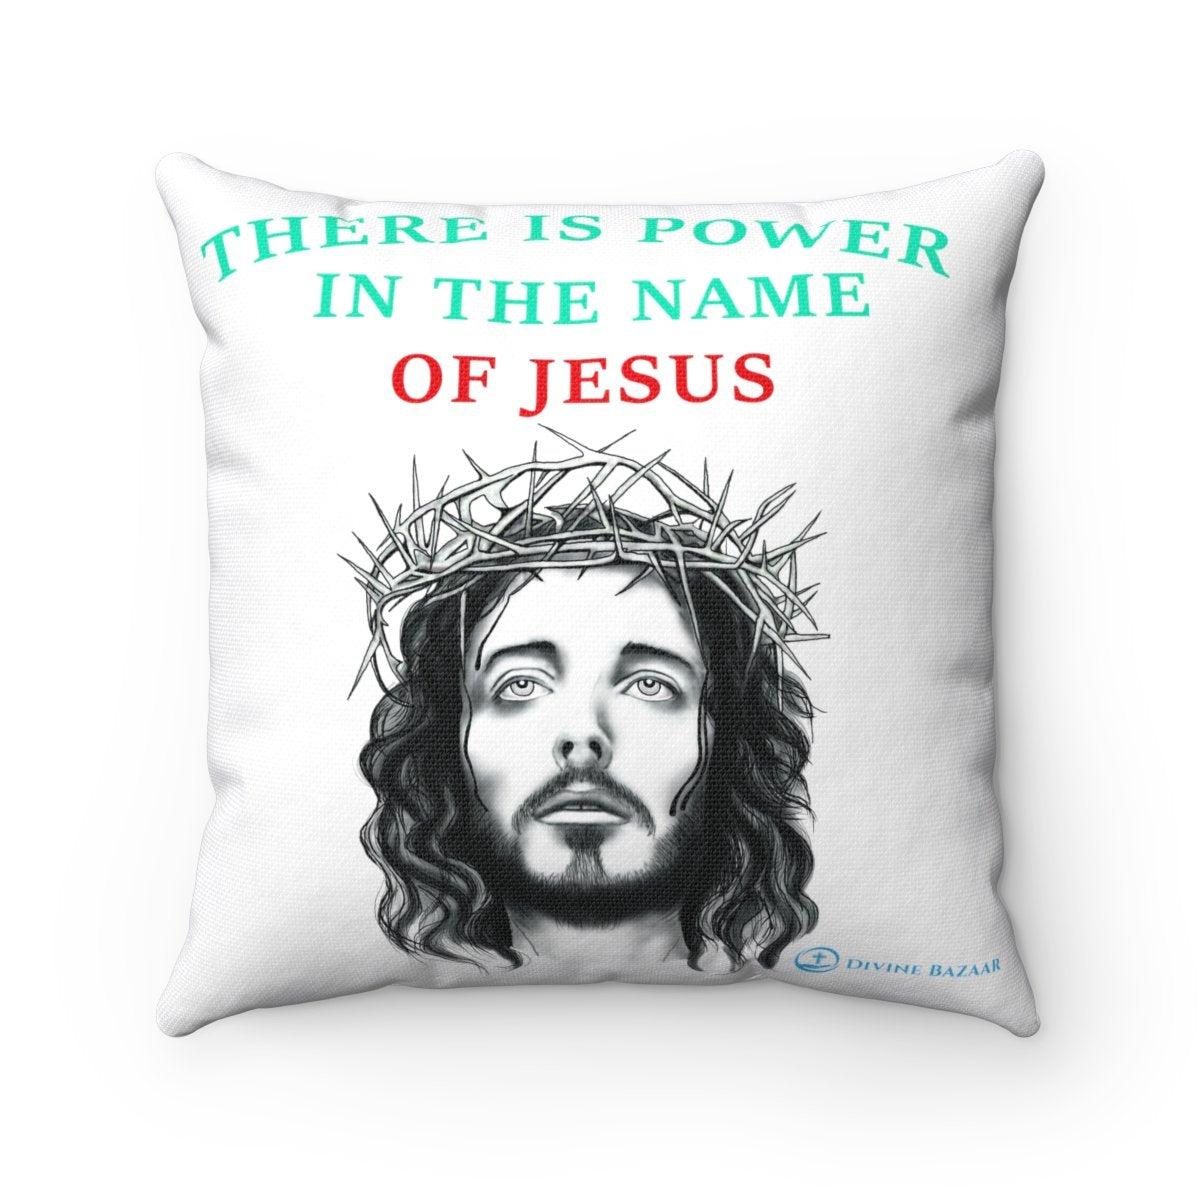 Spun Polyester Square  Pillow - There is power in the name of Jesus